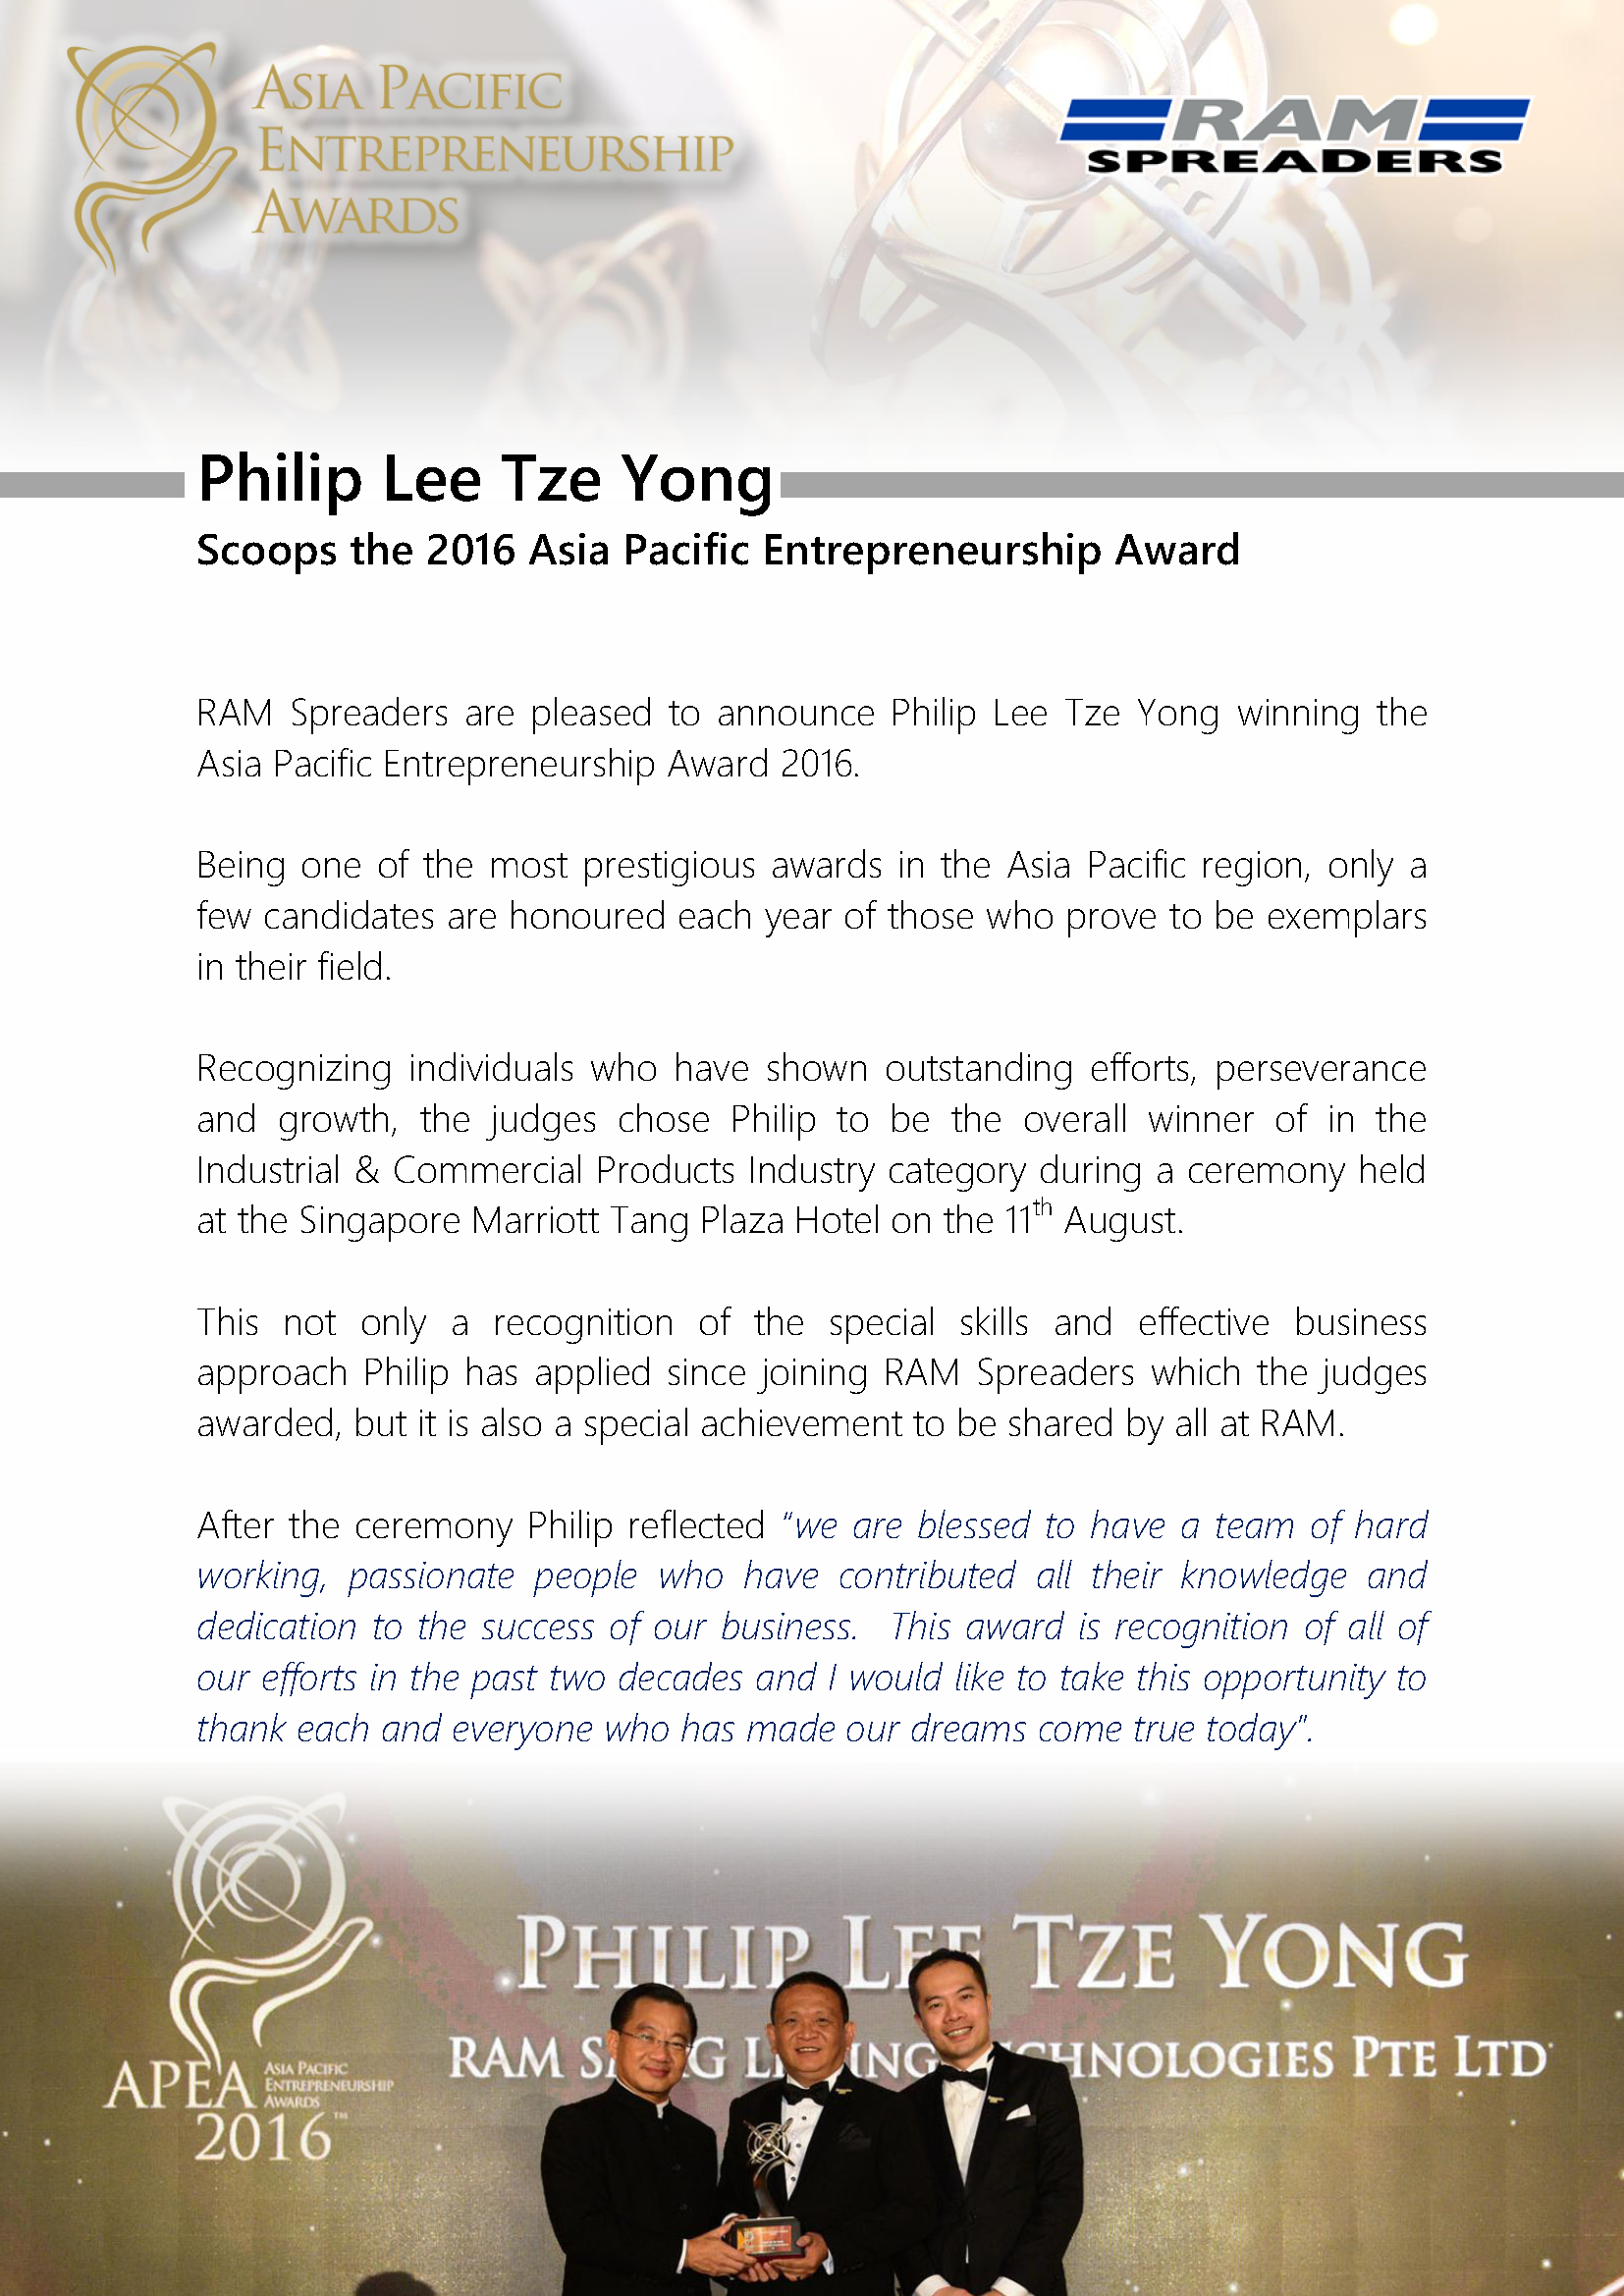 Philip Lee Tze Yong winner of APEA 2016 Award